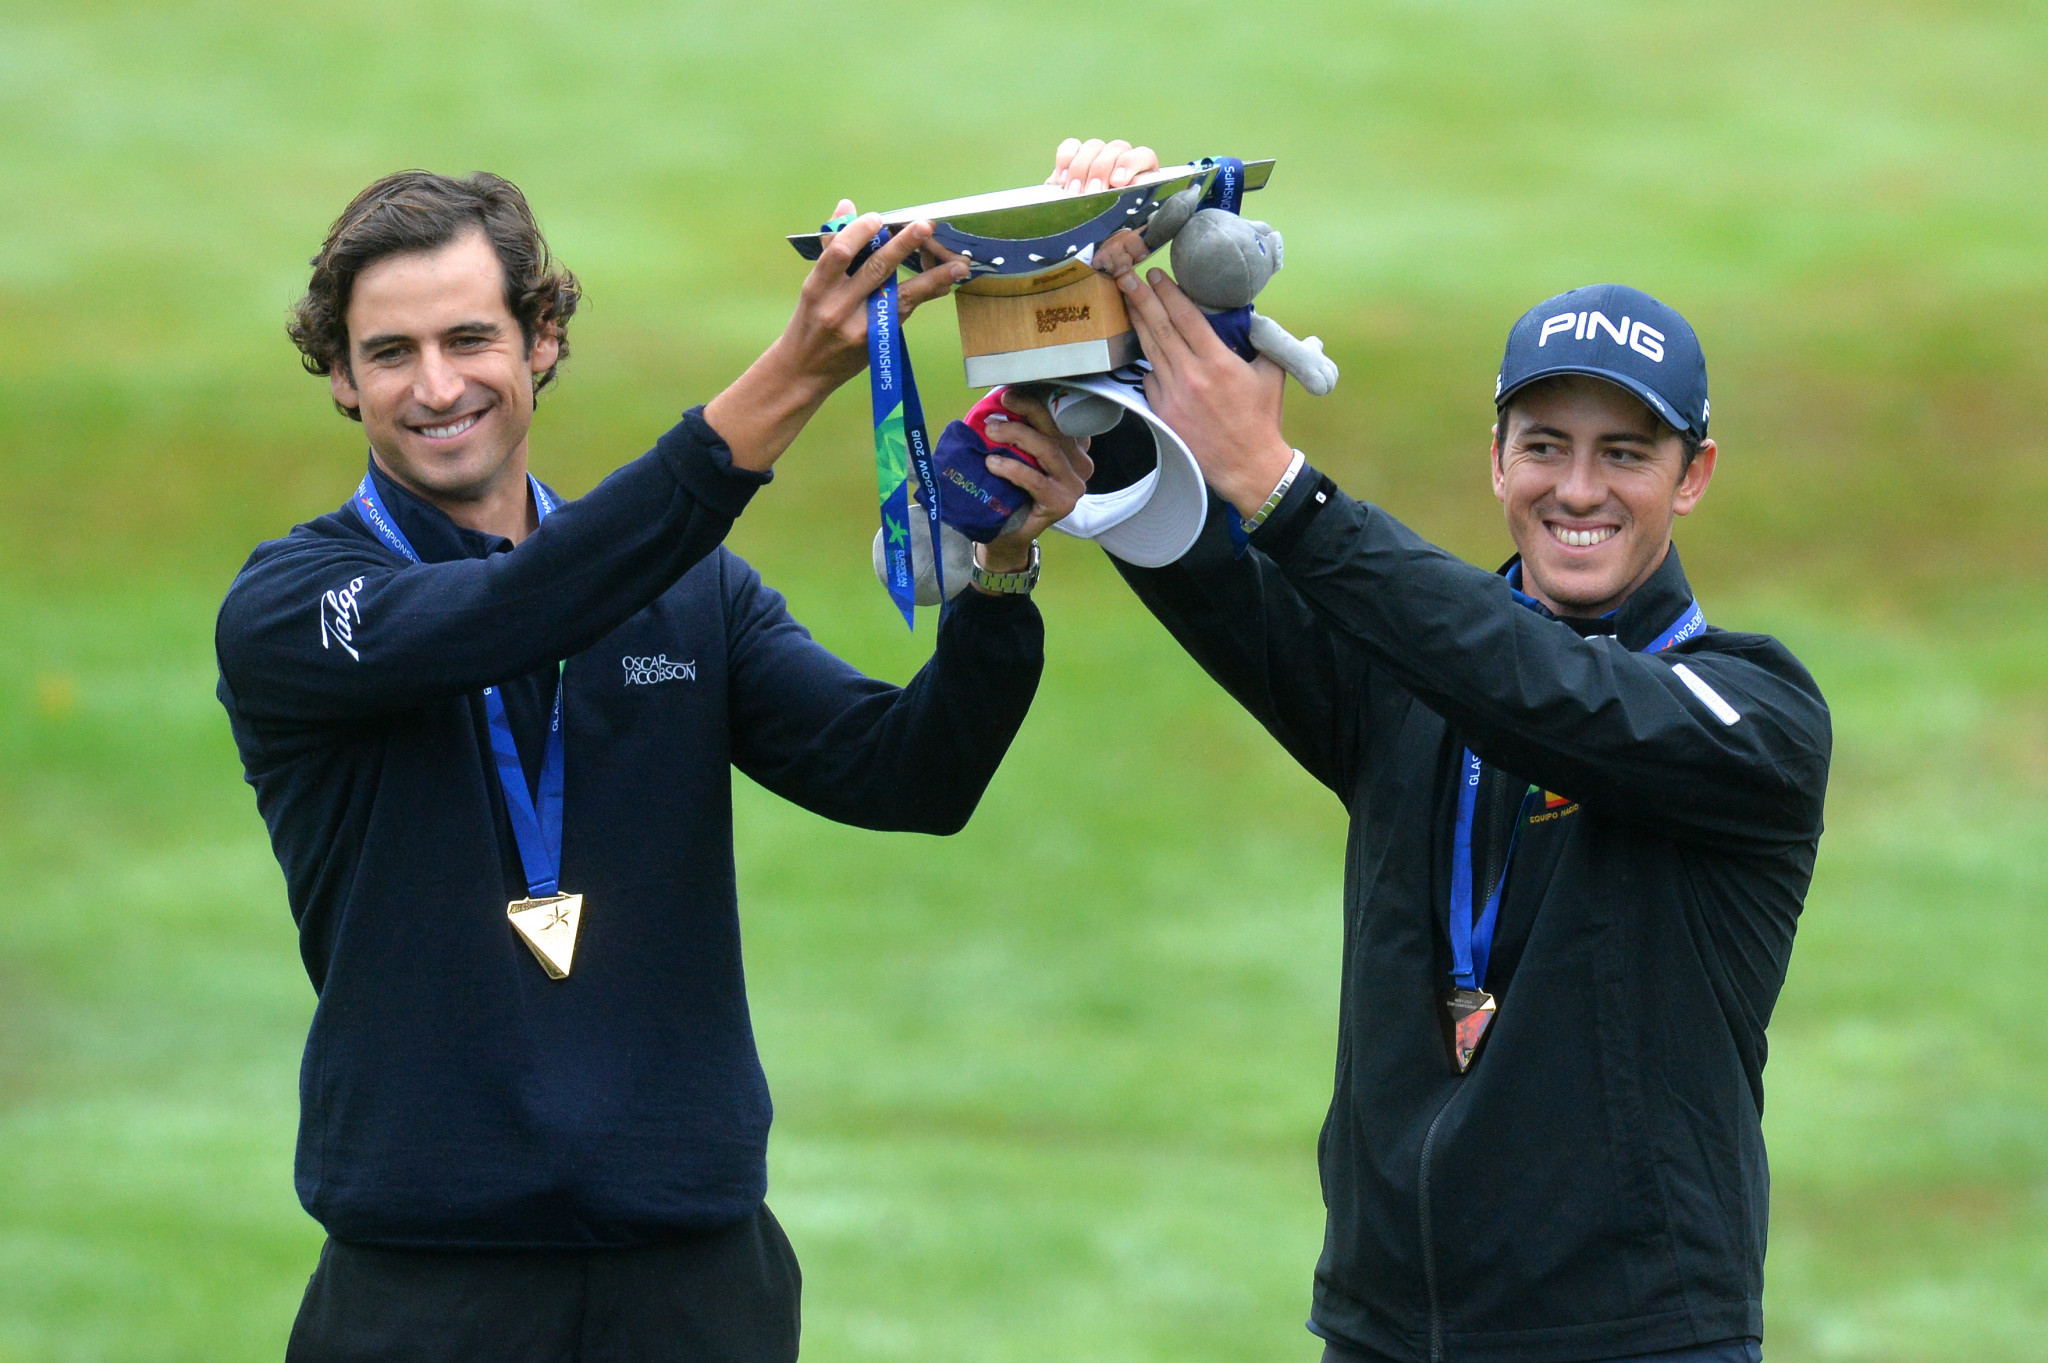 Spain's Pedro Oriol and Scott Fernandez came out on top in the men's team golf competition ©Getty Images